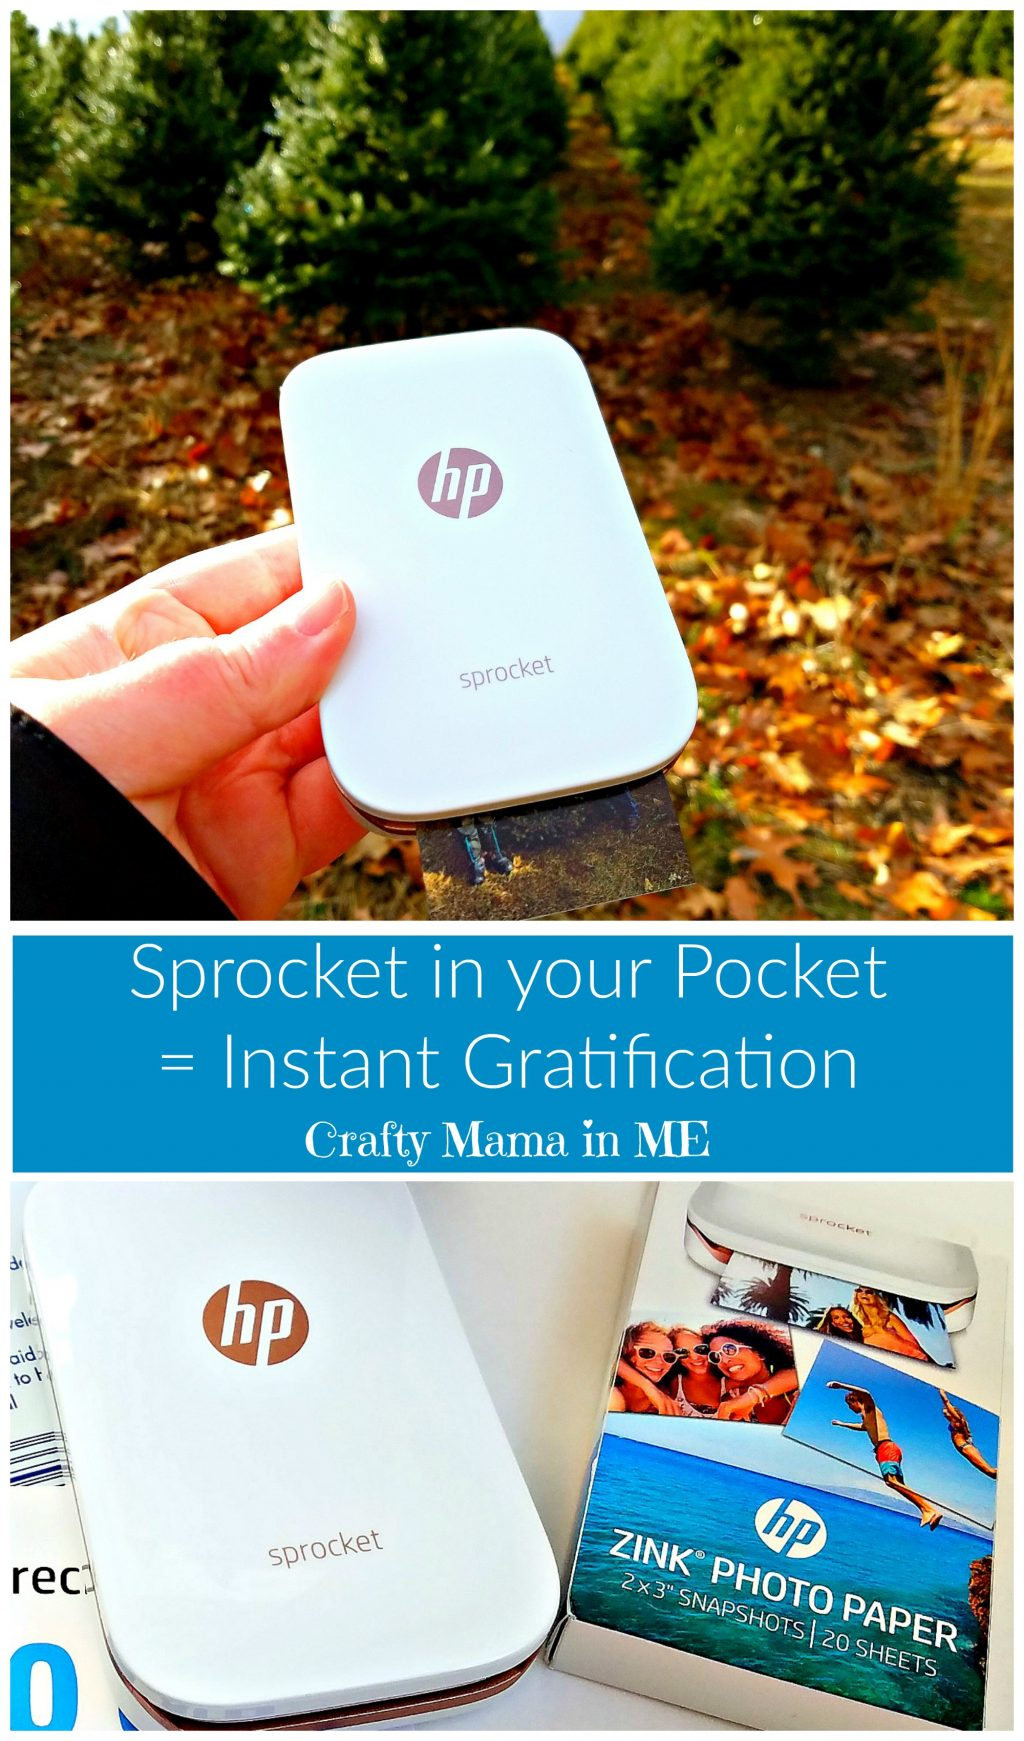 Sprocket in your Pocket = Instant Gratification